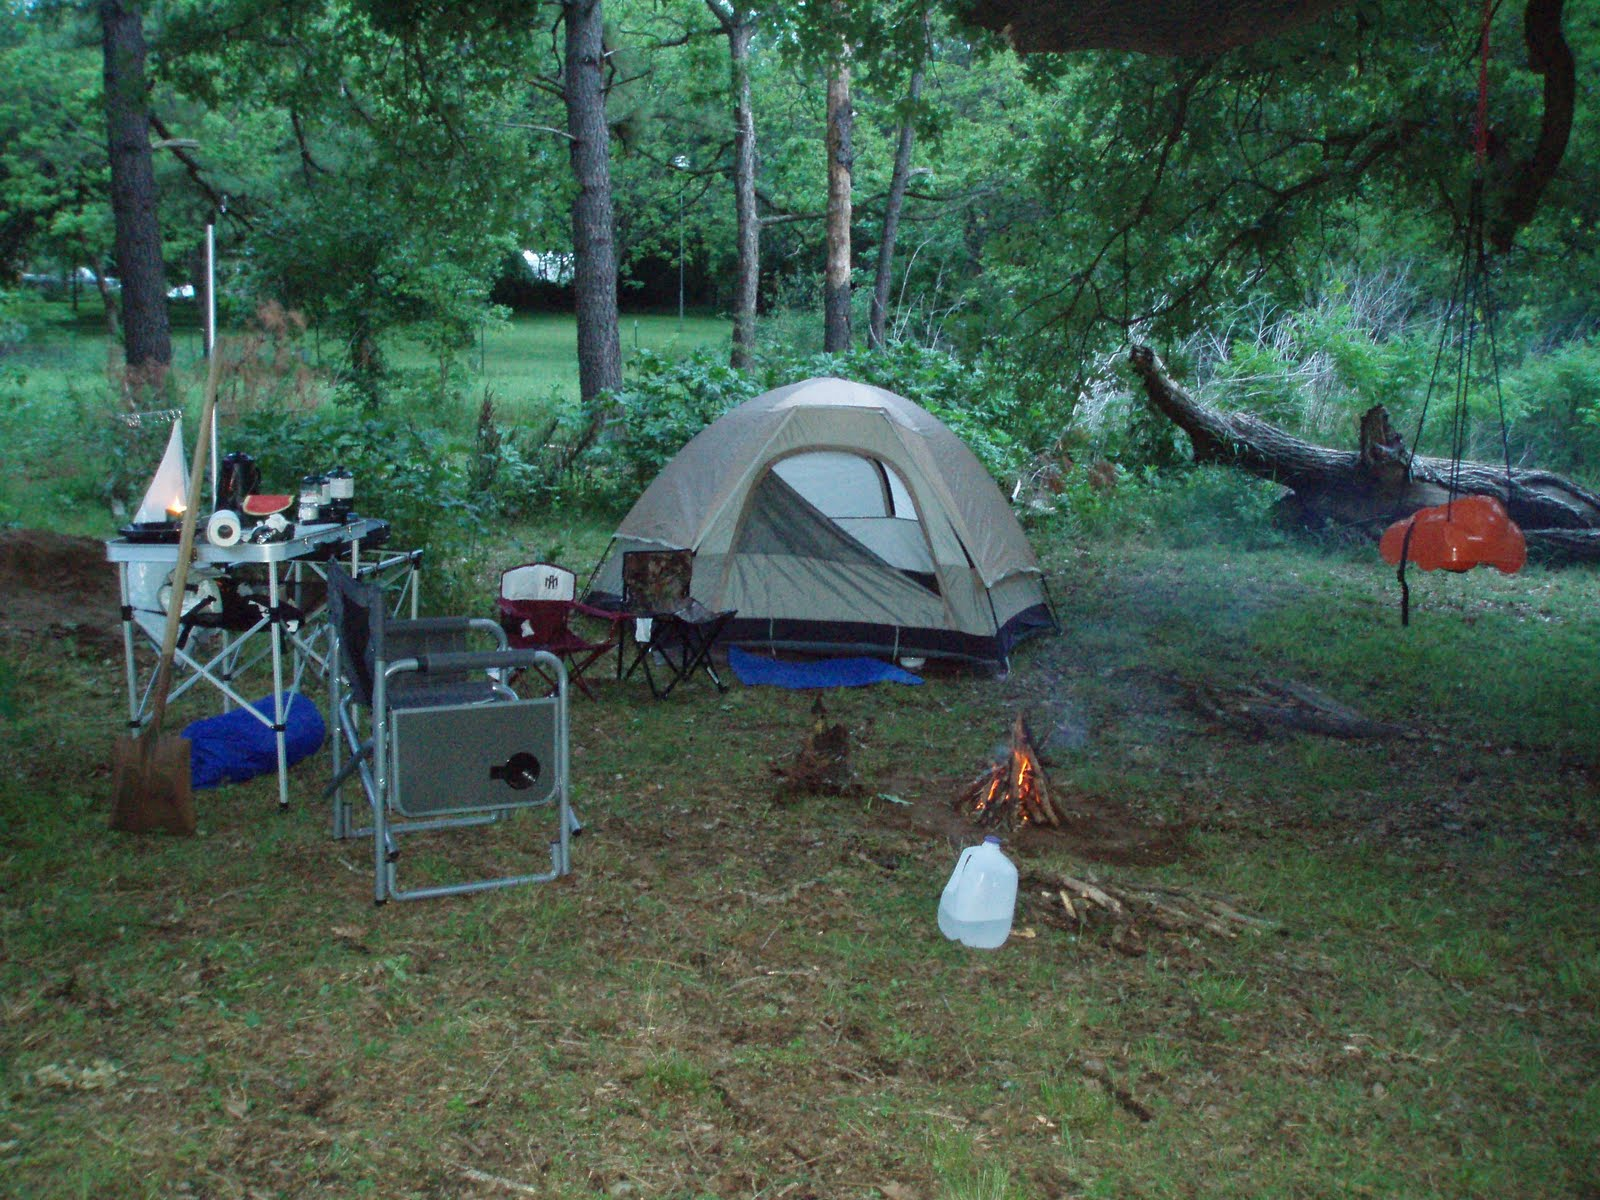 Camping In The Woods Images